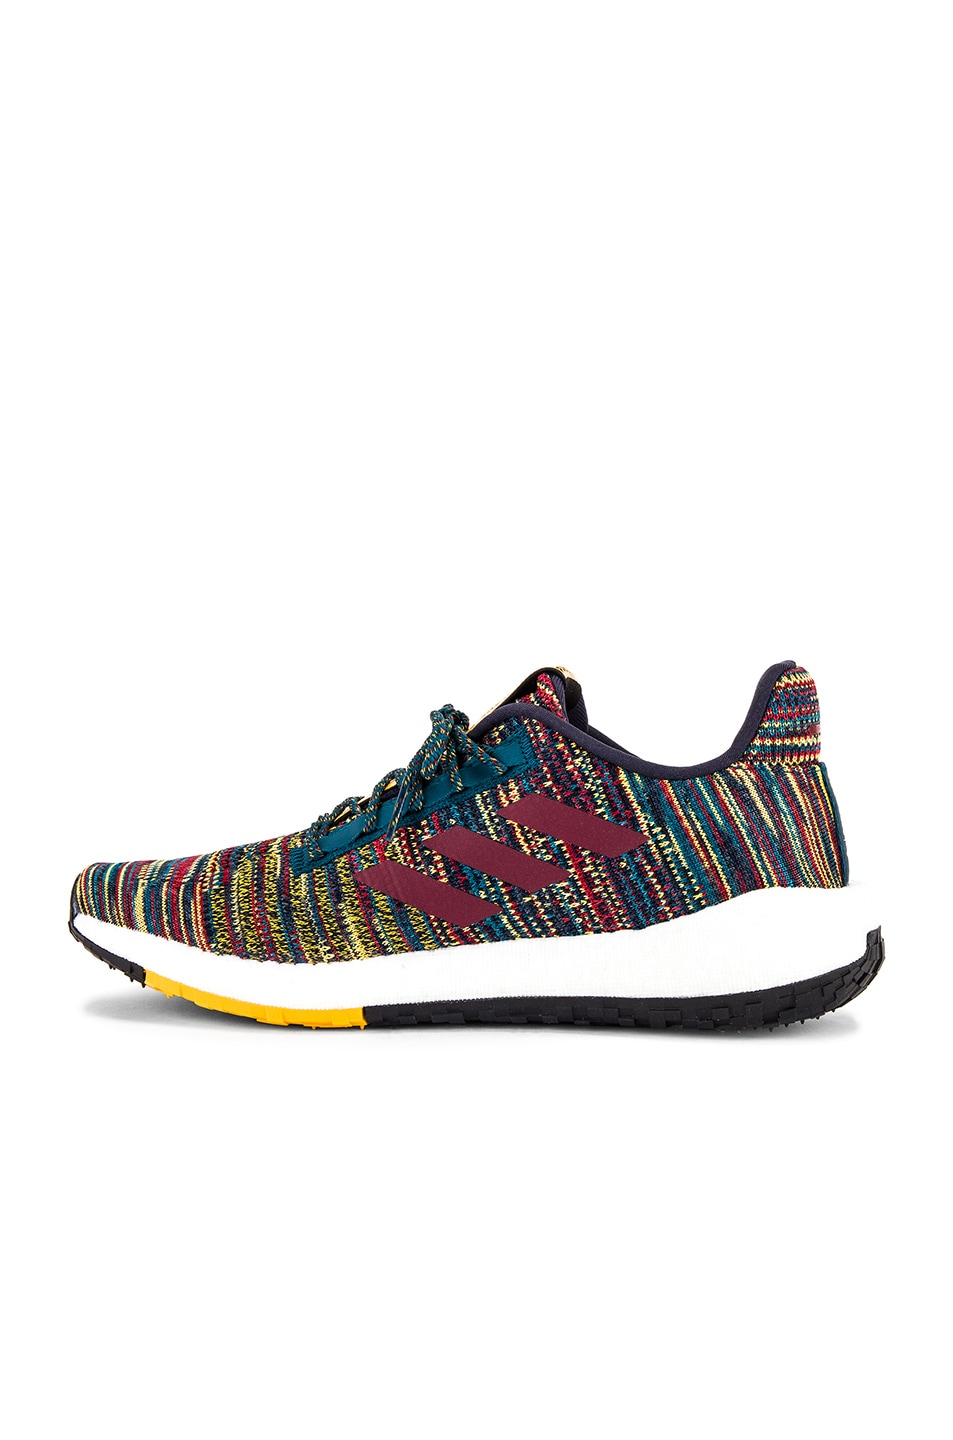 Image 5 of adidas by MISSONI Pulseboost HD in Tech Mineral & Collegiate Burgundy & Active Gold